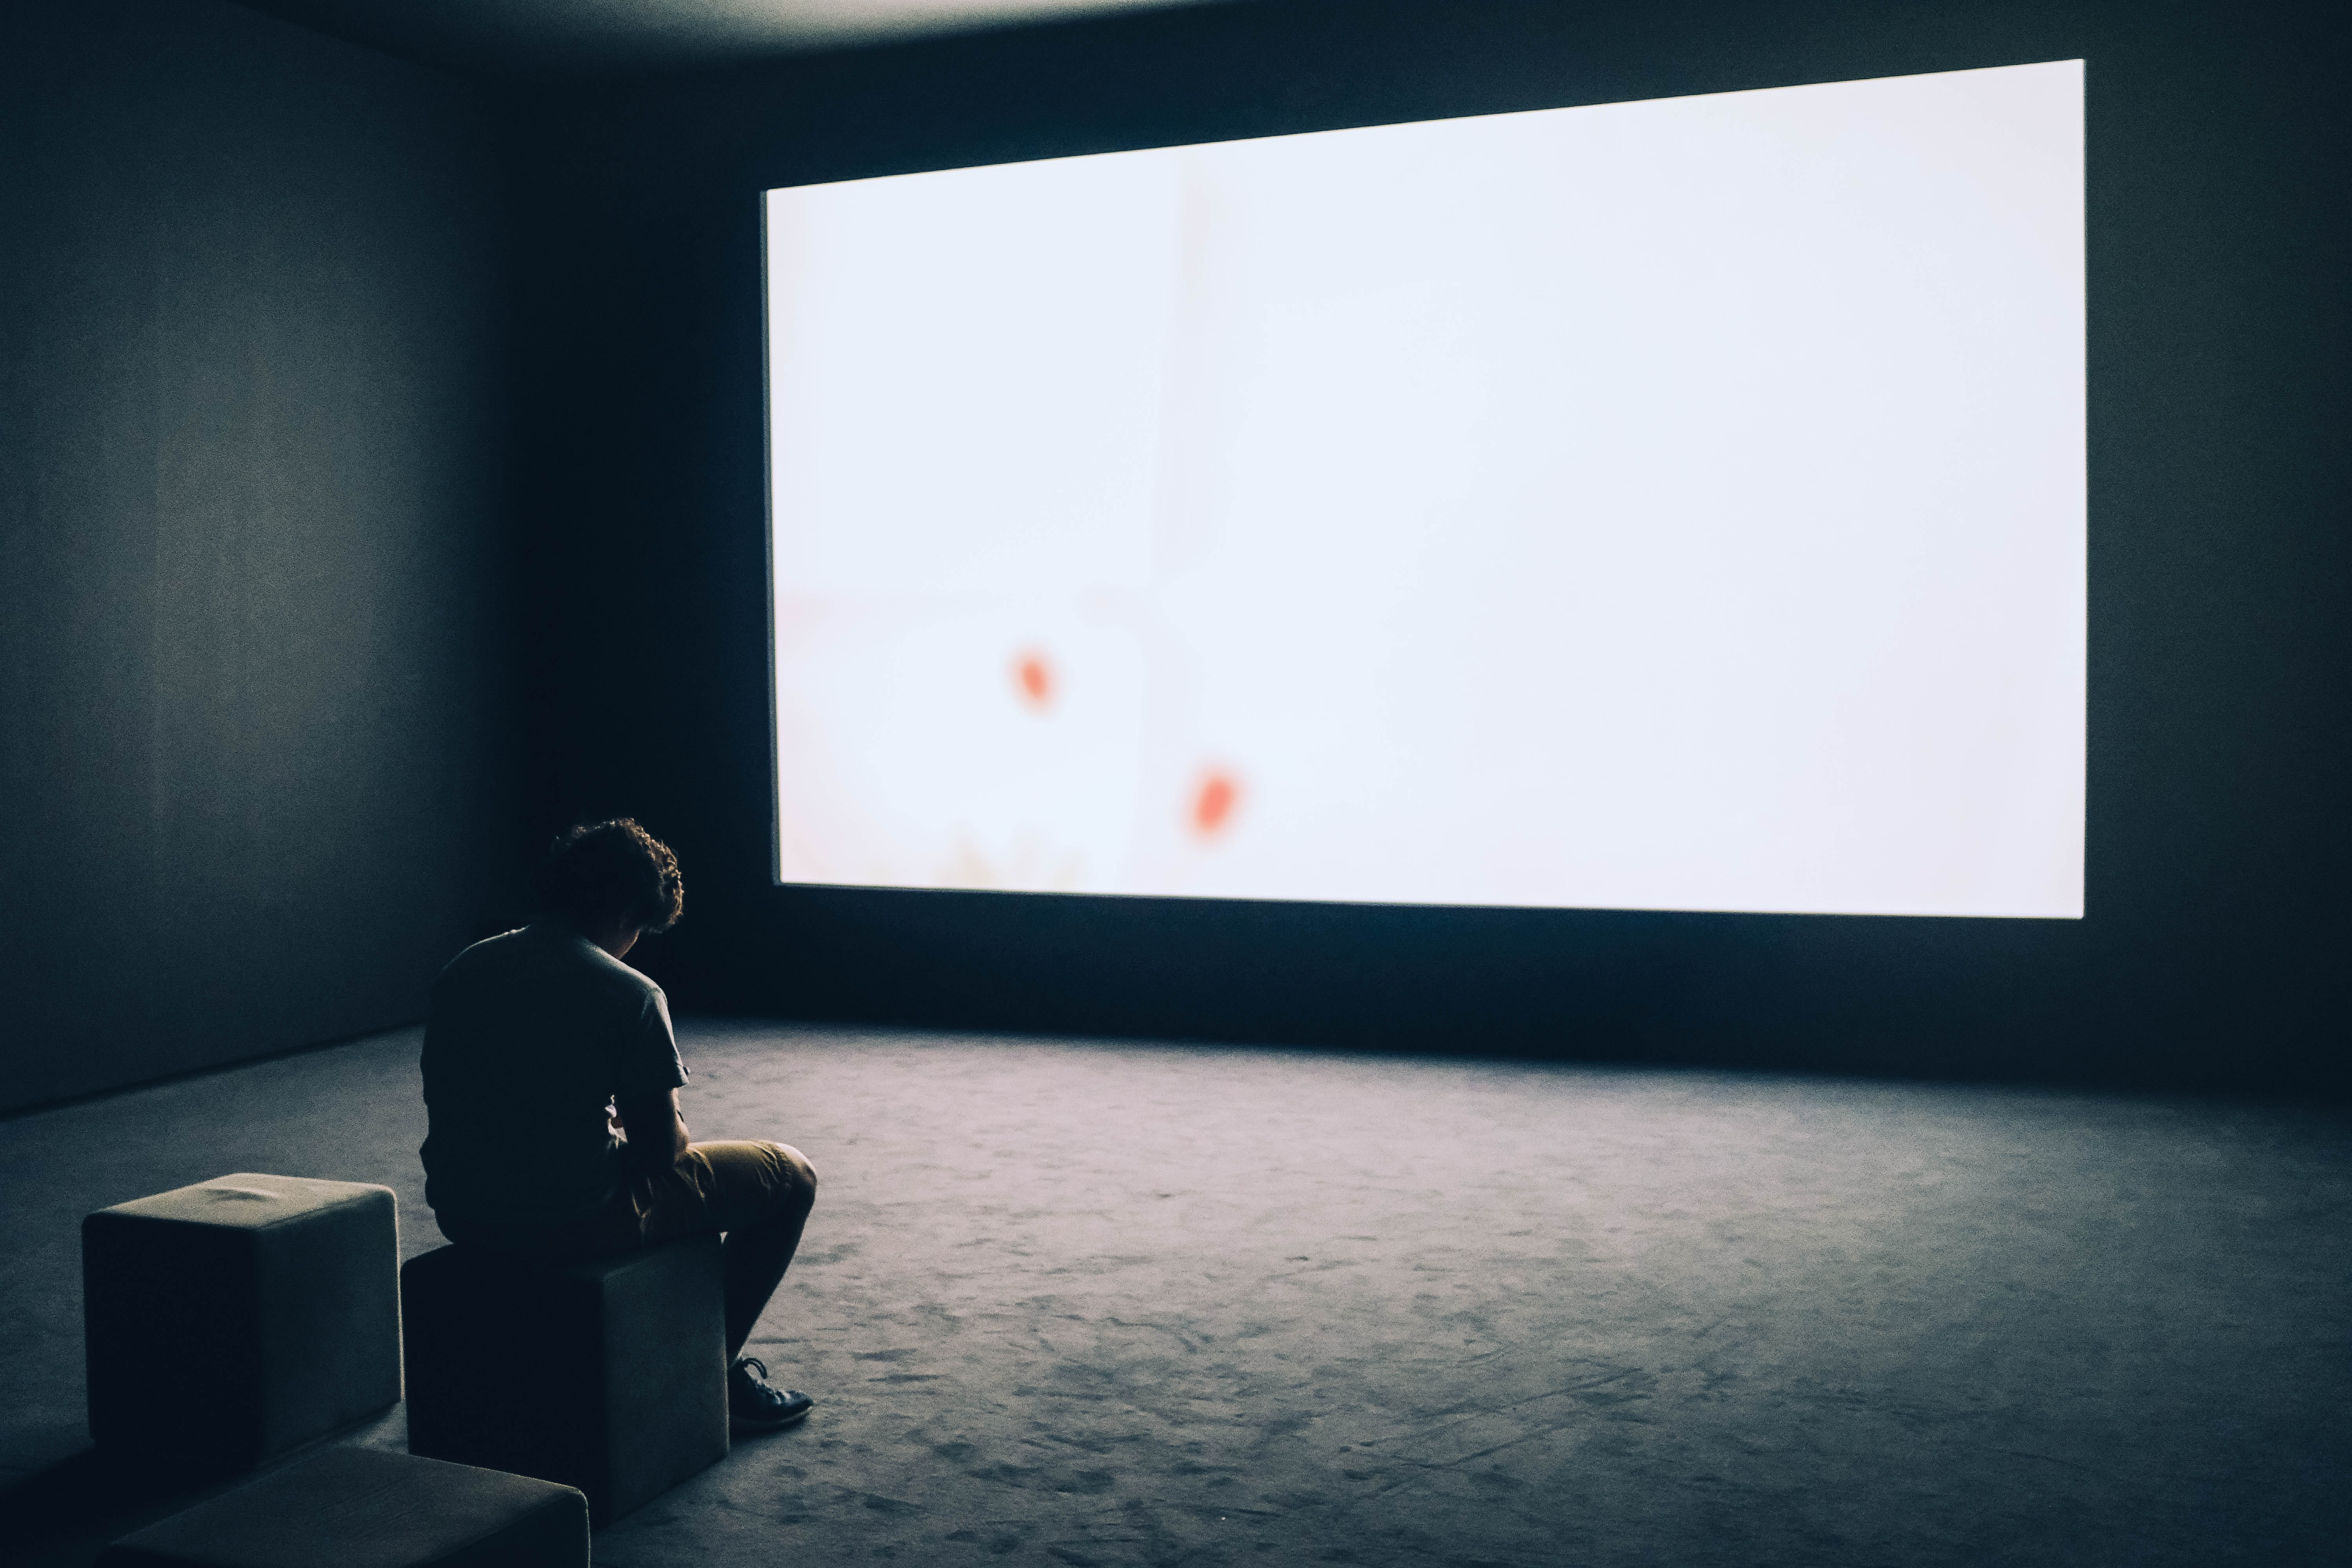 How Big is Too Big? A Guide to Optimizing Screen Size vs Viewing Distance for a Perfect Home-Theater Experience